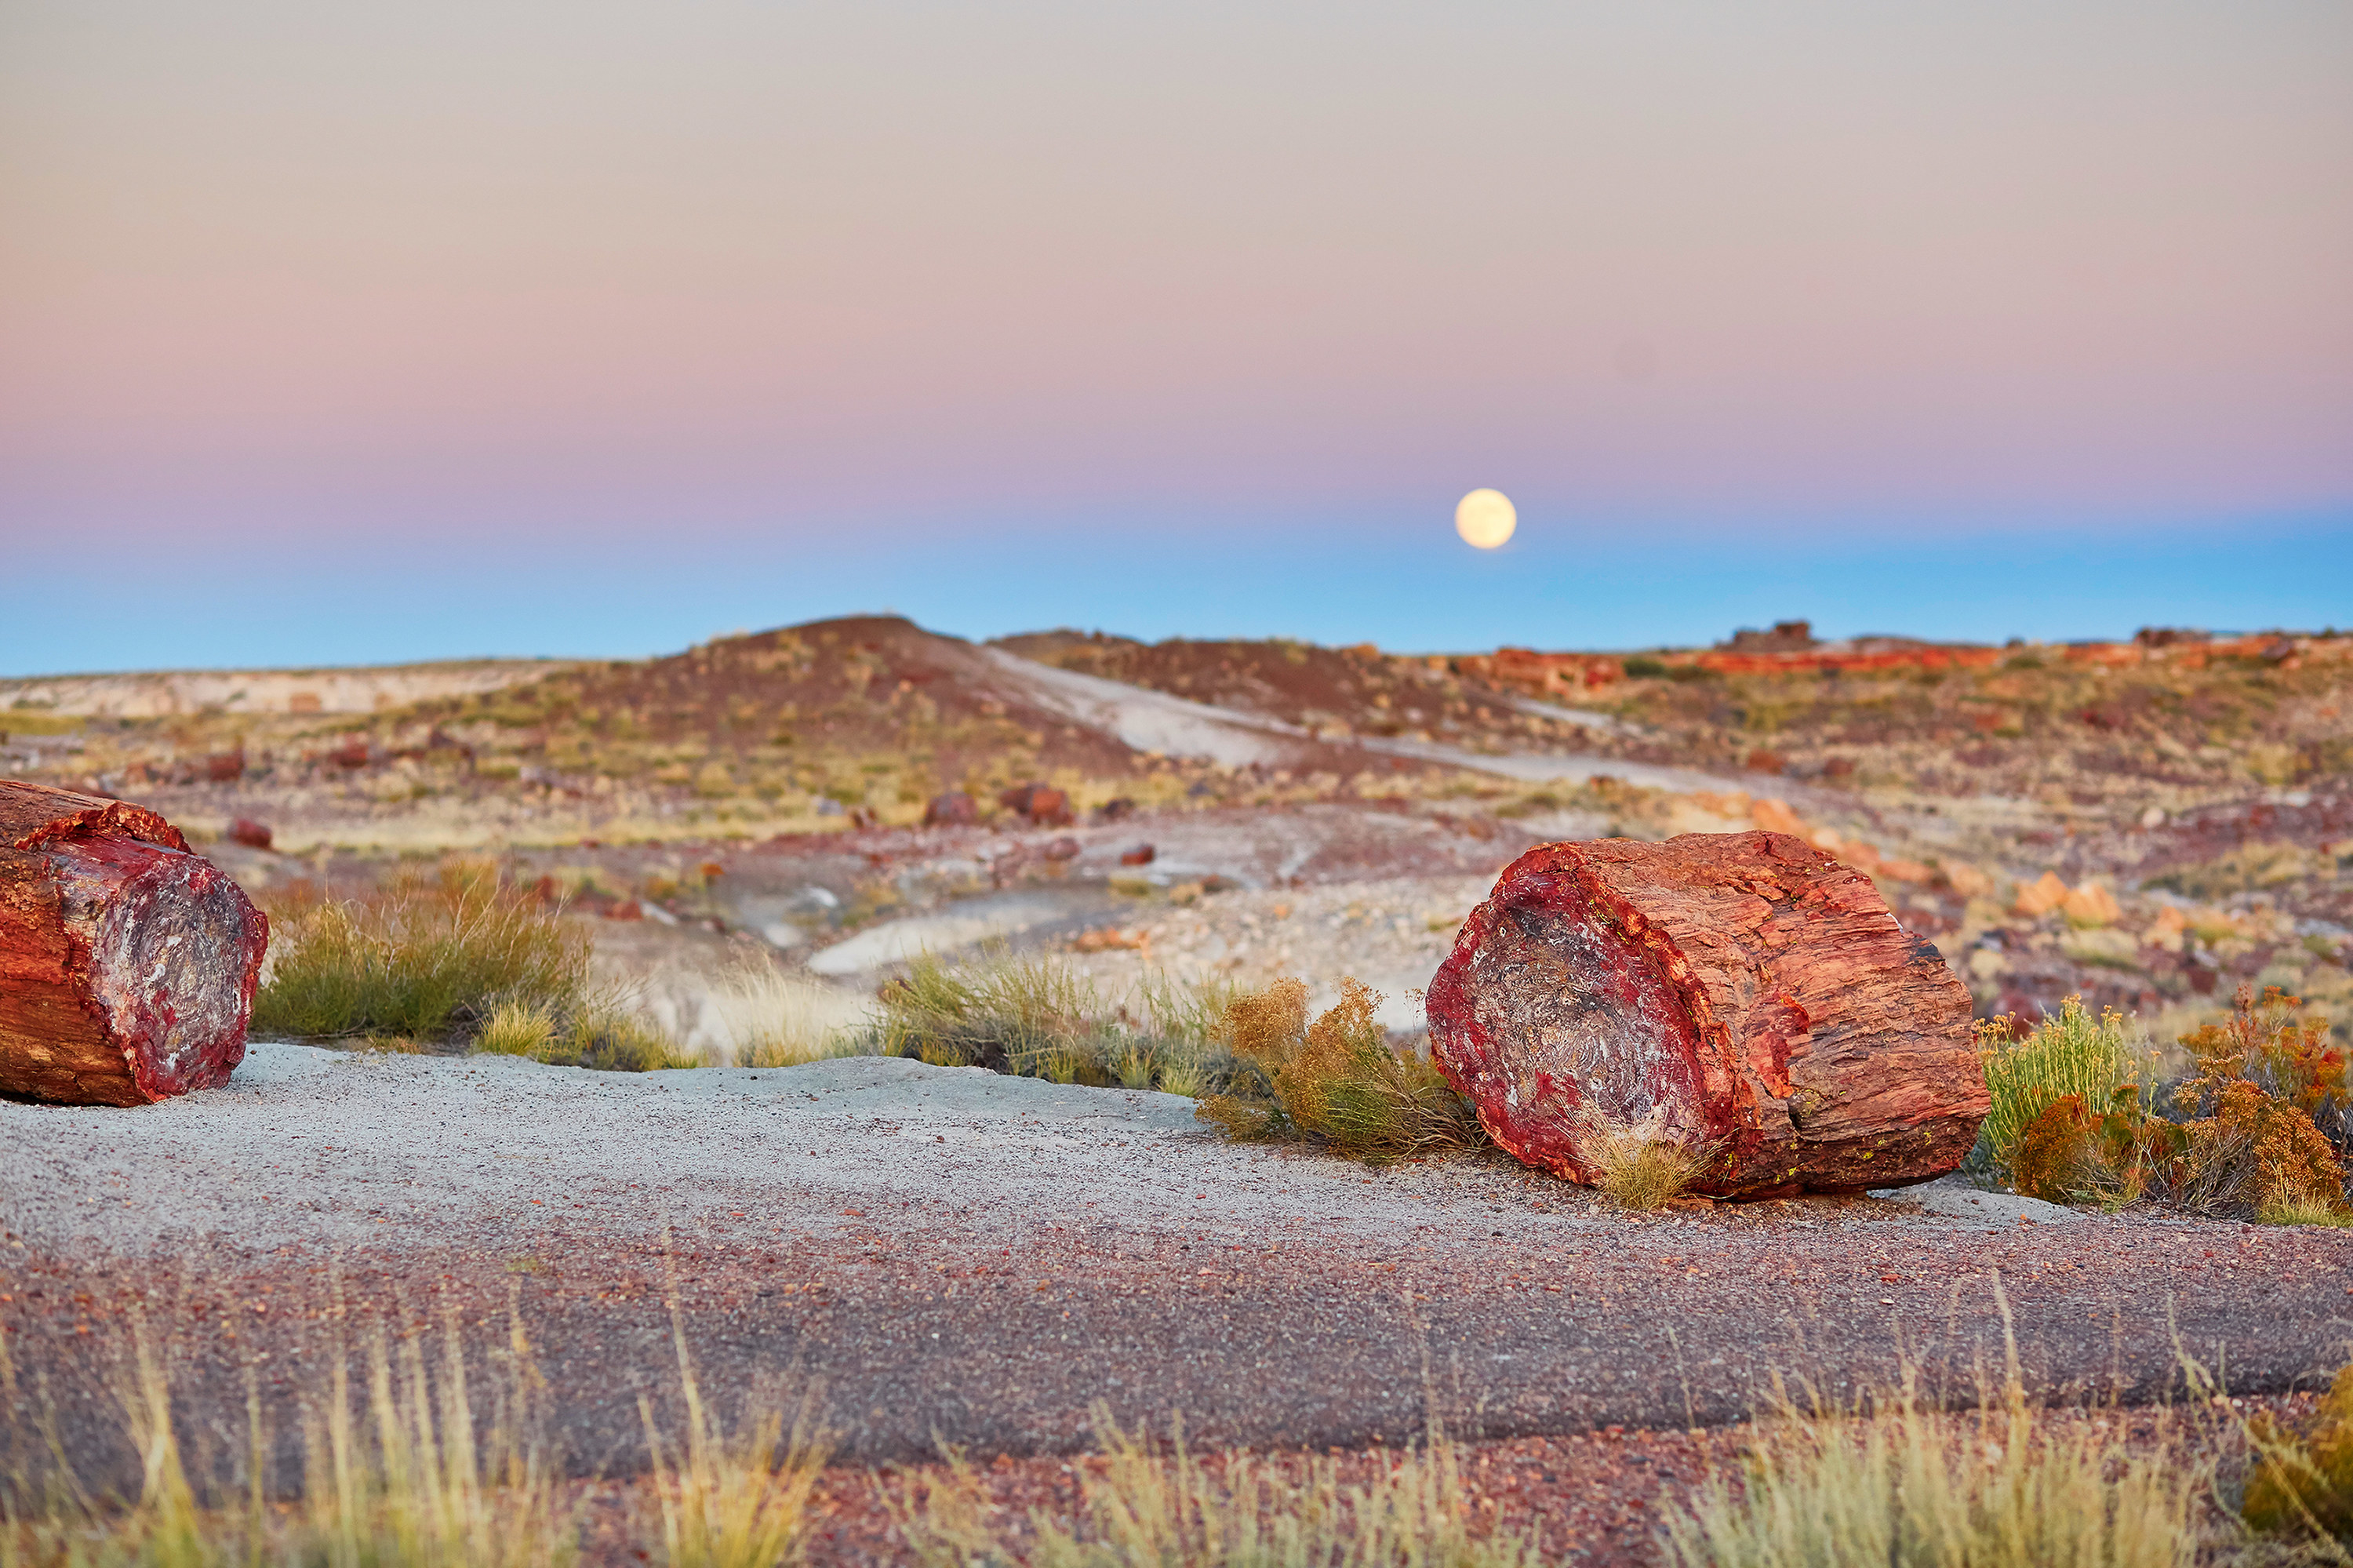 The moon in a twilight sky over a desert landscape dotted with shrubs and two red, petrified wood pieces in the foreground